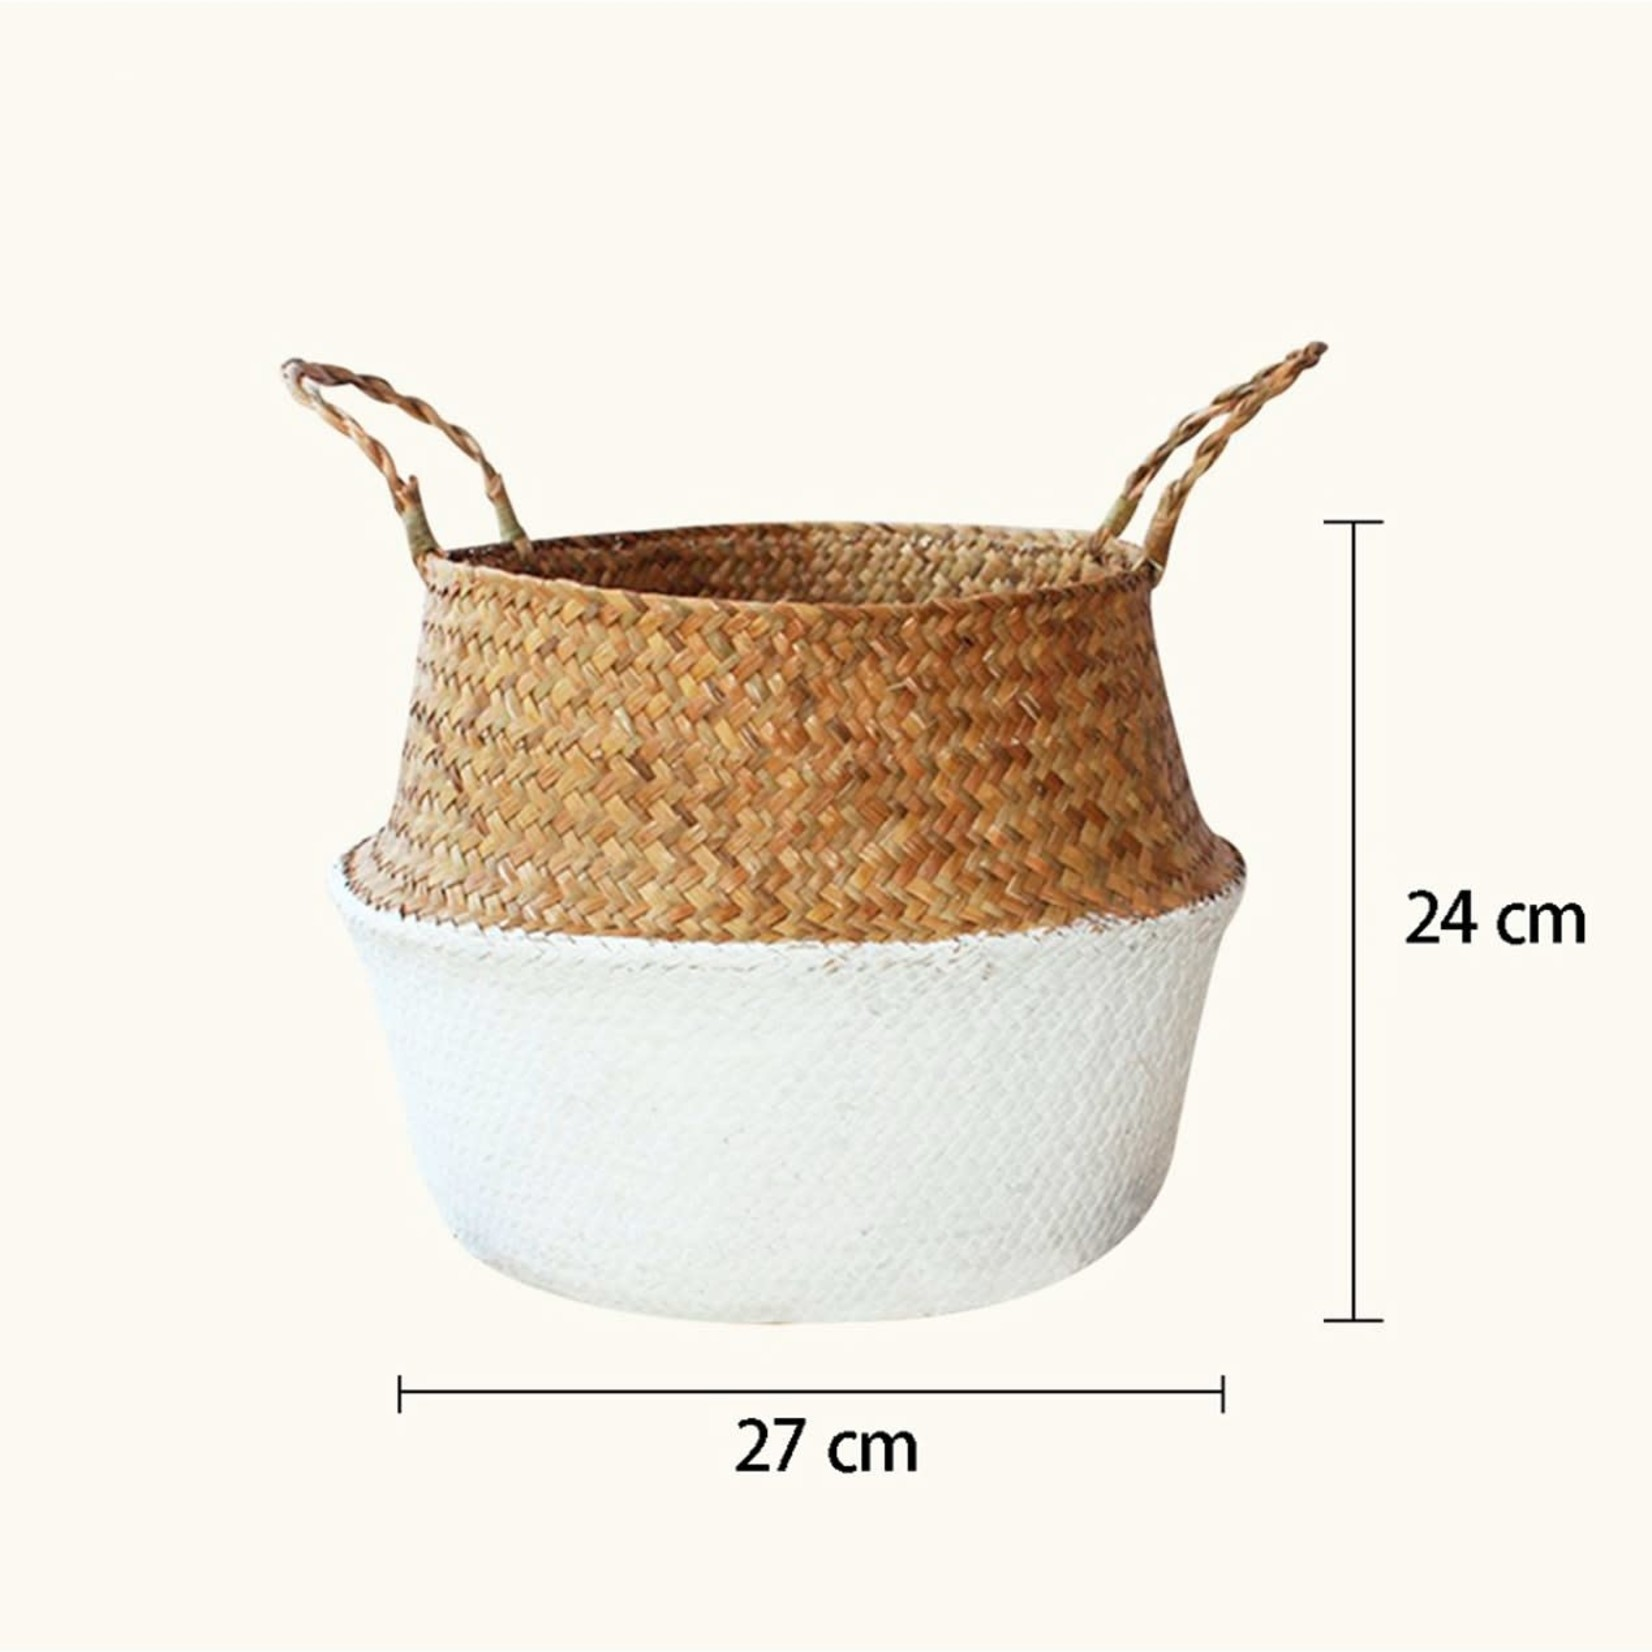 Page&Co. Woven Seagrass Flower Basket - Large